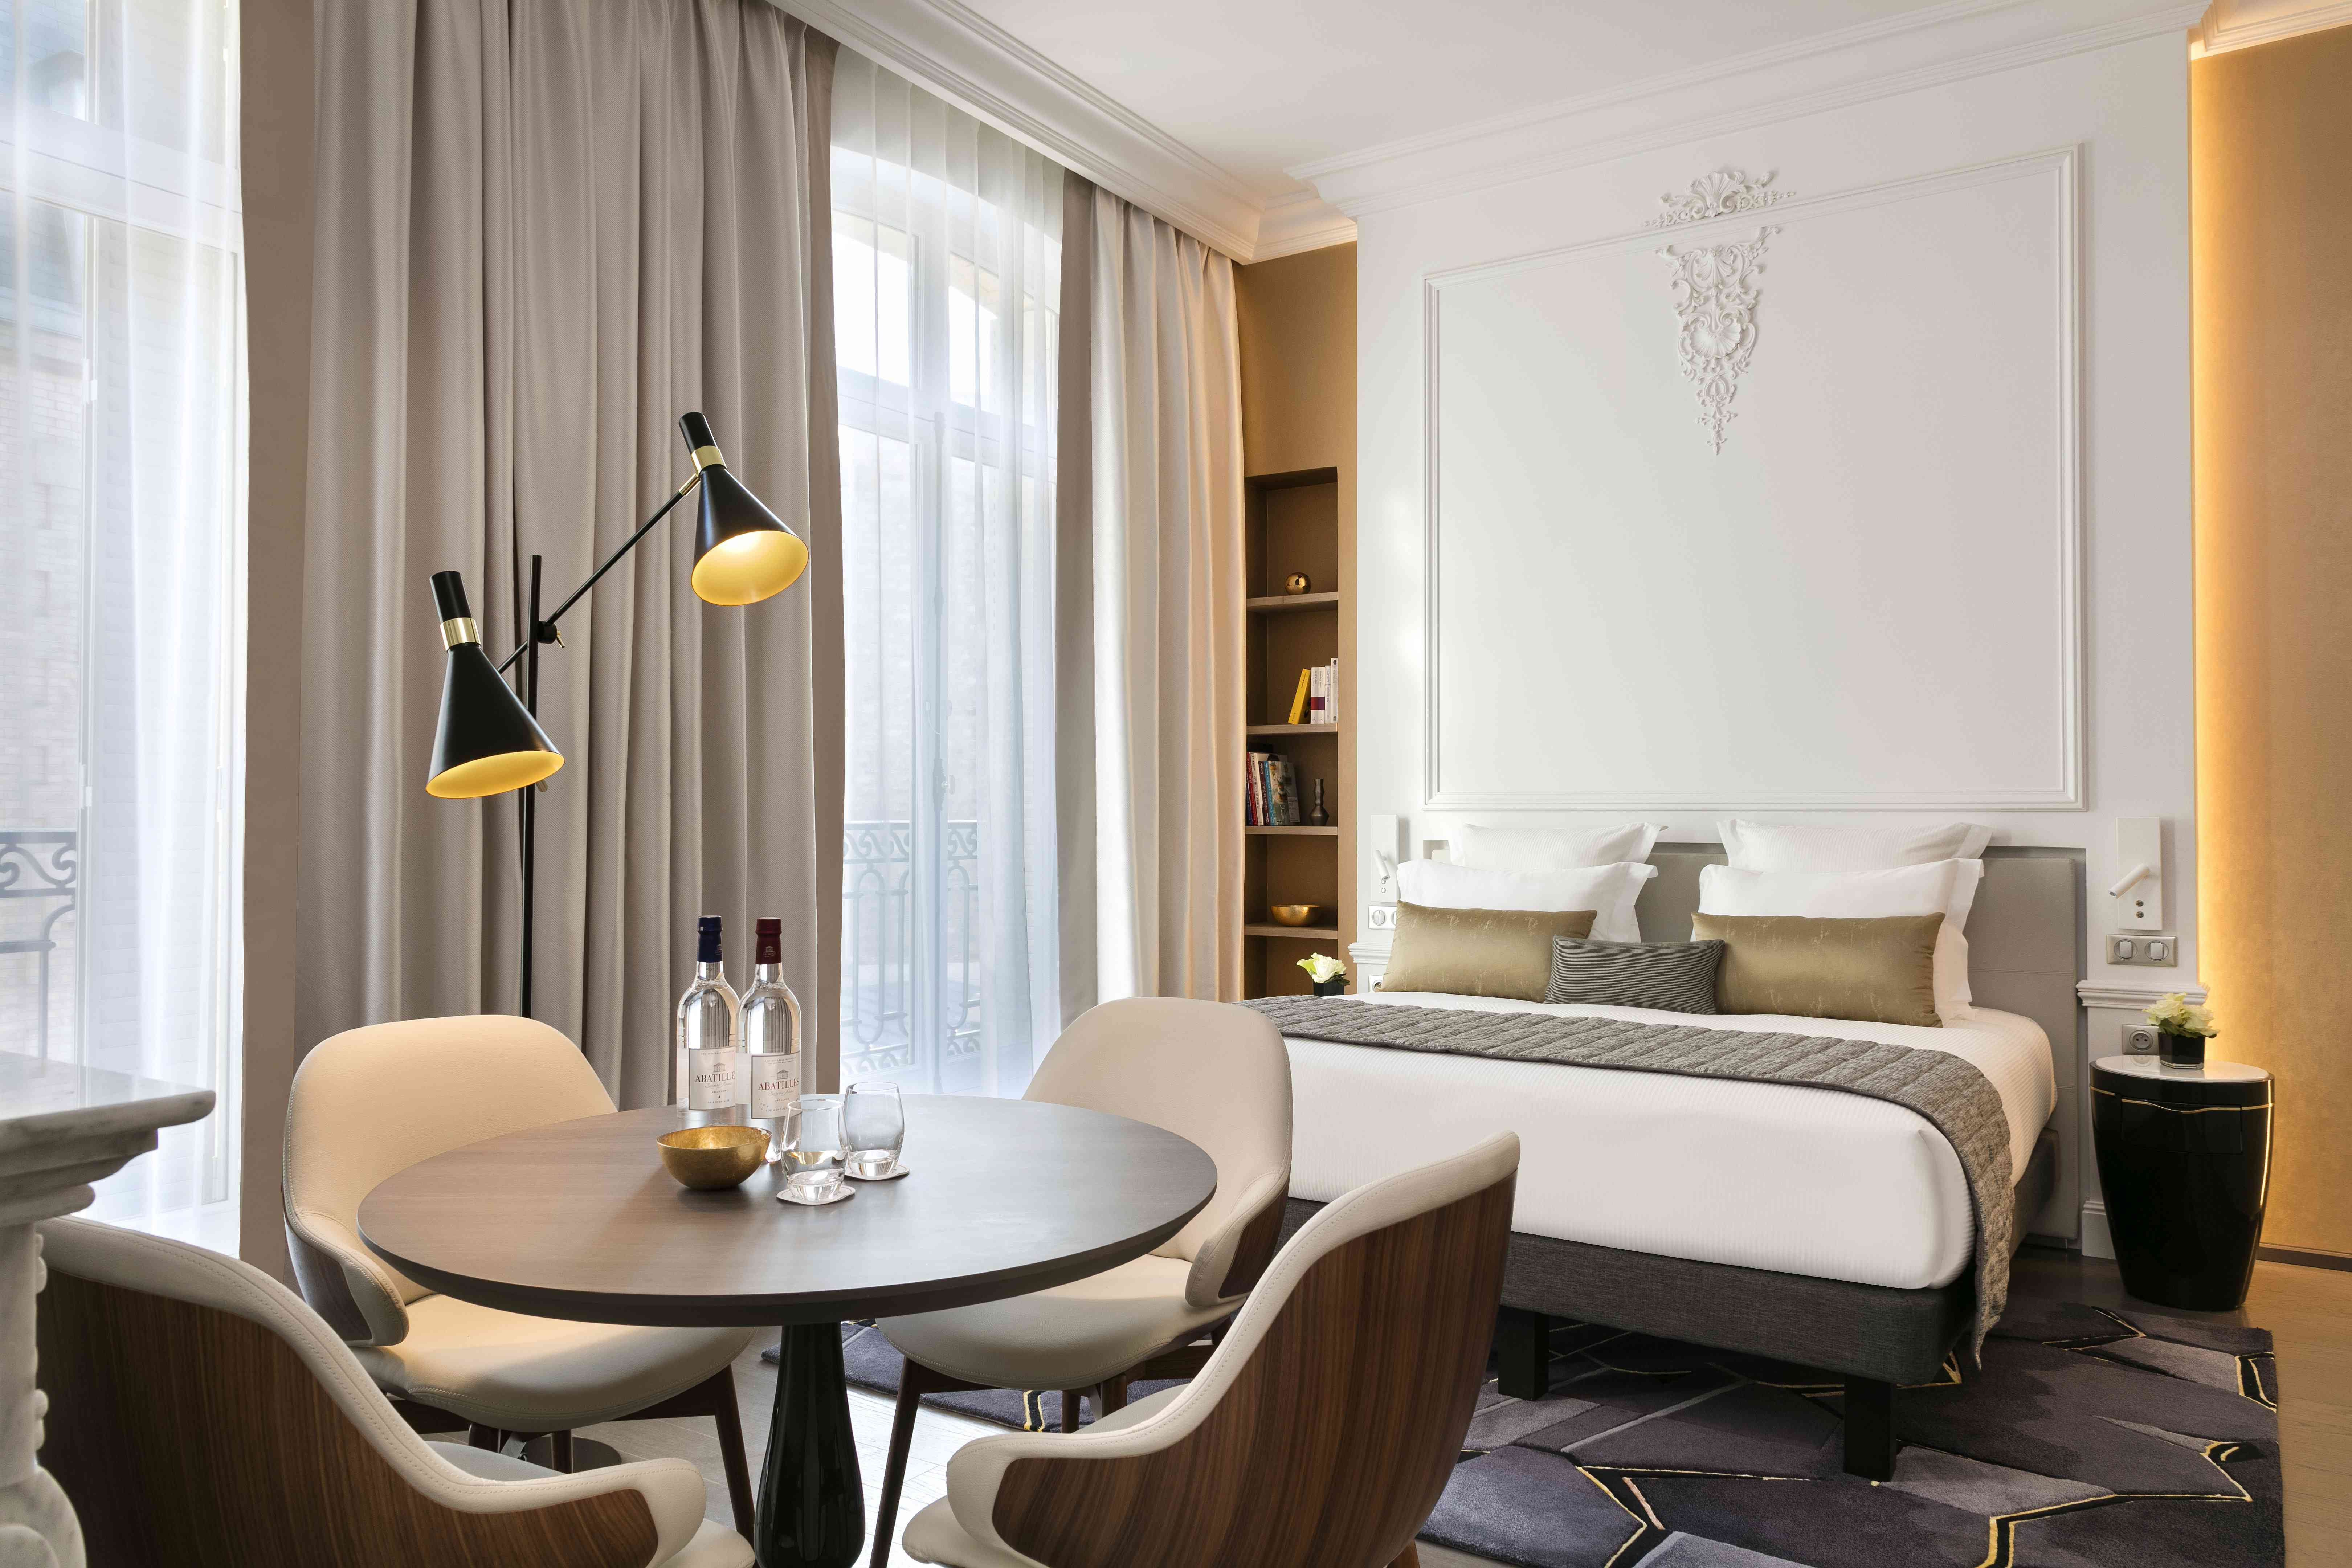 Deluxe Suite at Le Clef featuring a King Bed with a table and 4 chairs